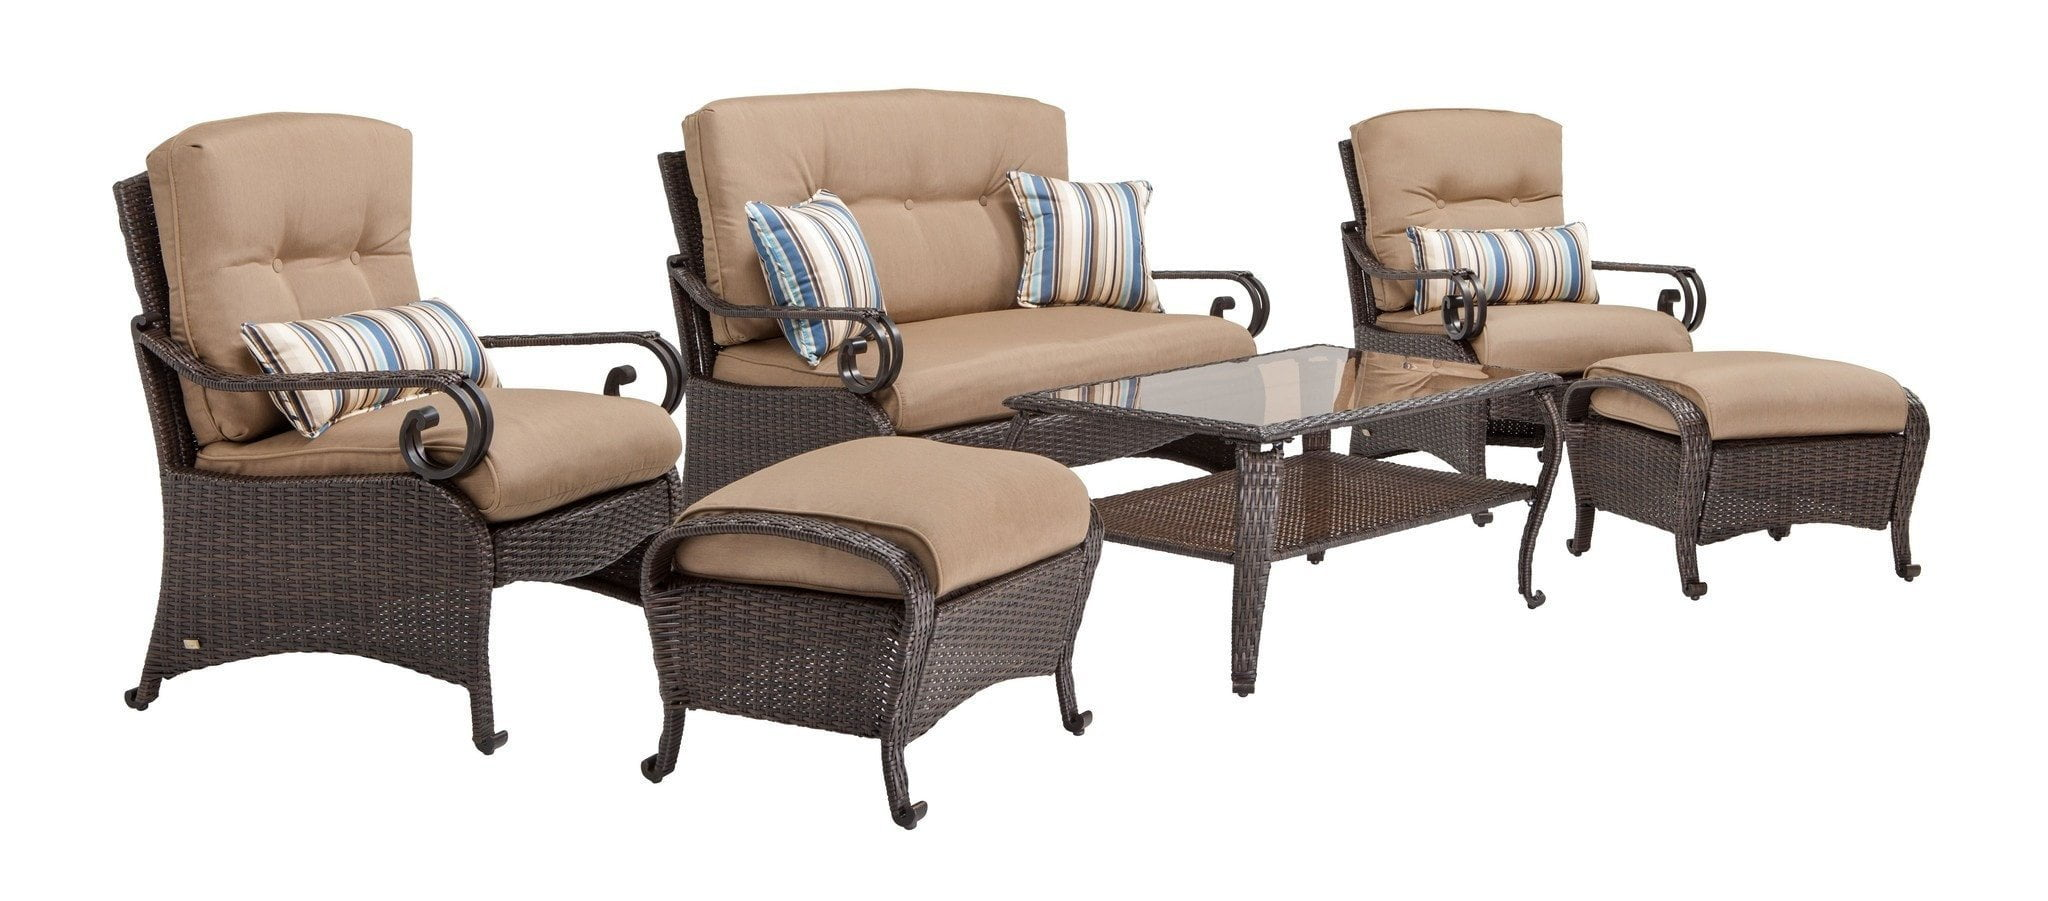 Lake como deep seating wicker patio furniture set khaki for Deep seating outdoor furniture